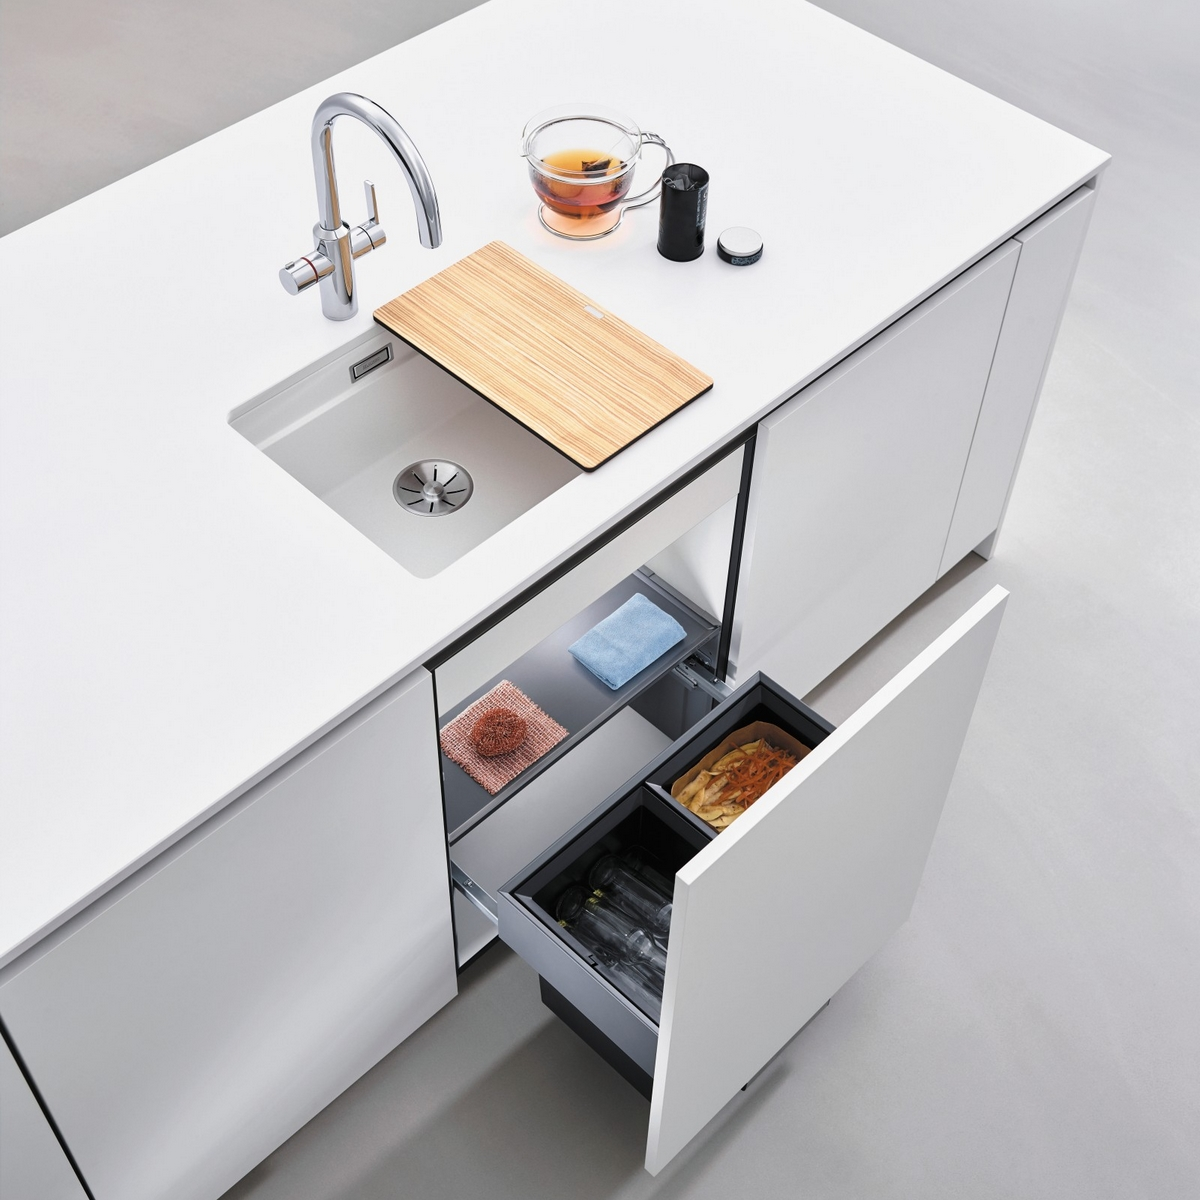 Silgranit Sinks Striking Harmony With Your Countertop Stone Granitop